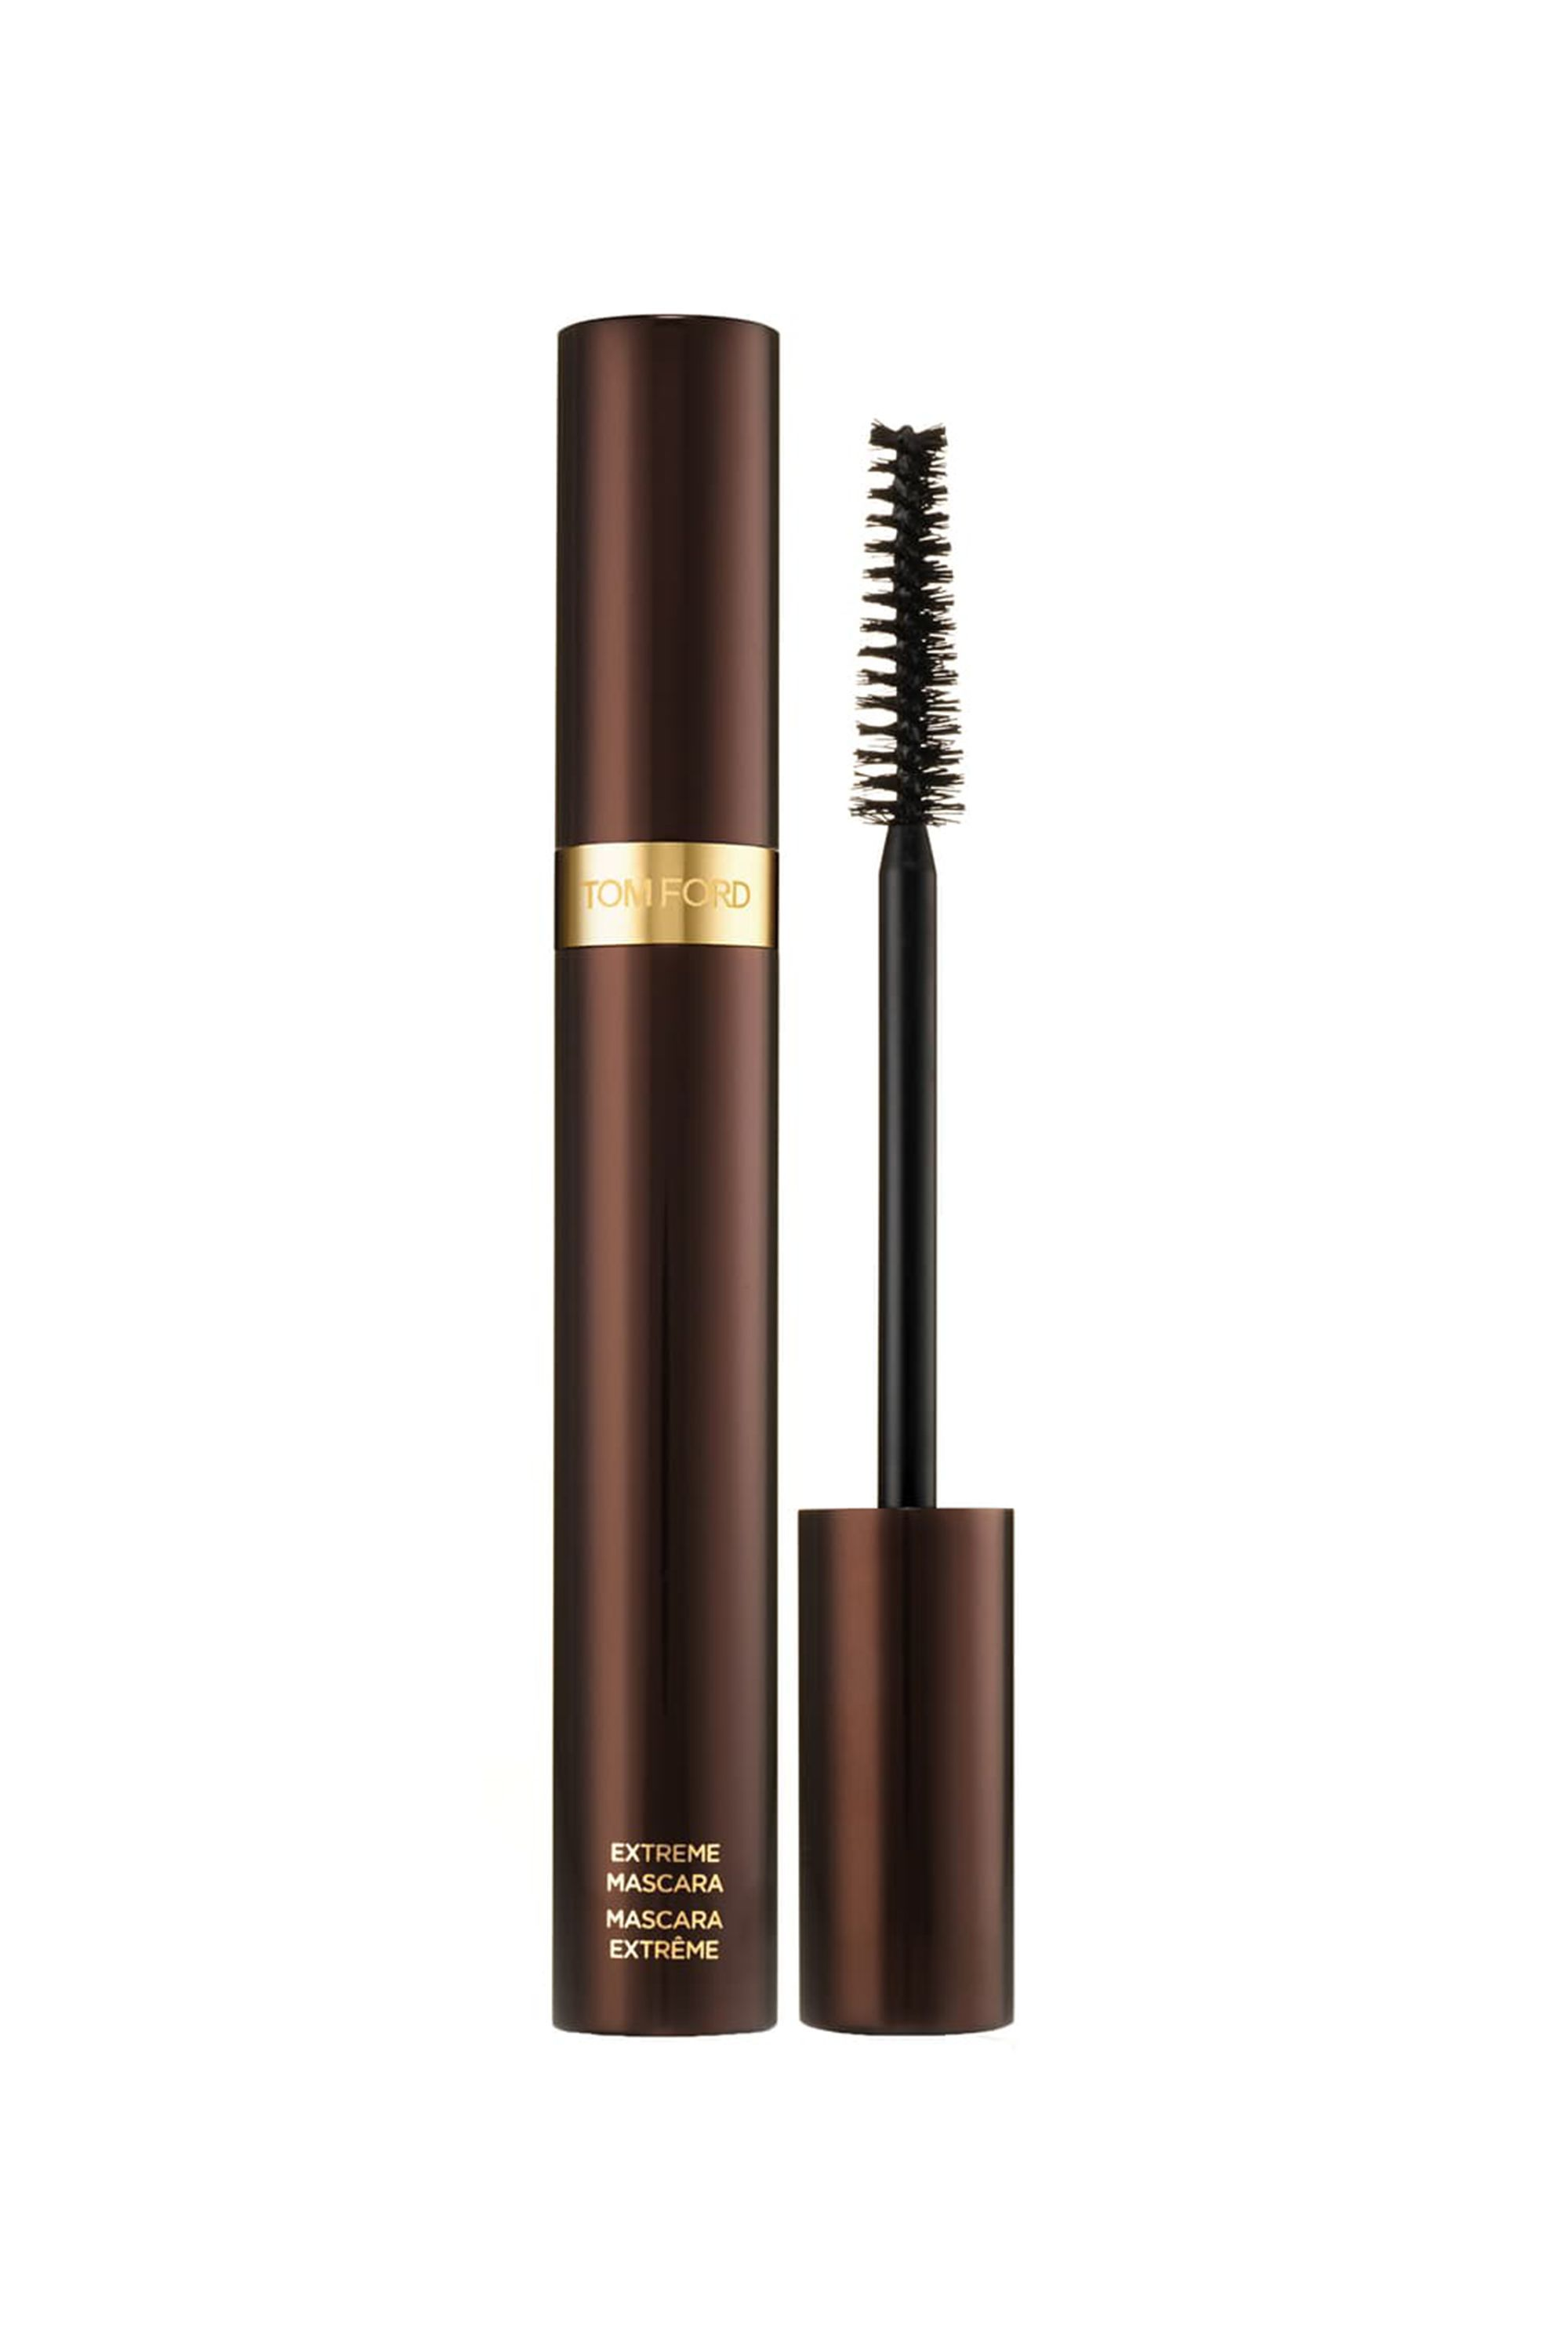 99b019ebdf5 10 Best Mascaras in 2019 - Top Mascara Reviews for Volume and Length -  ELLE.com